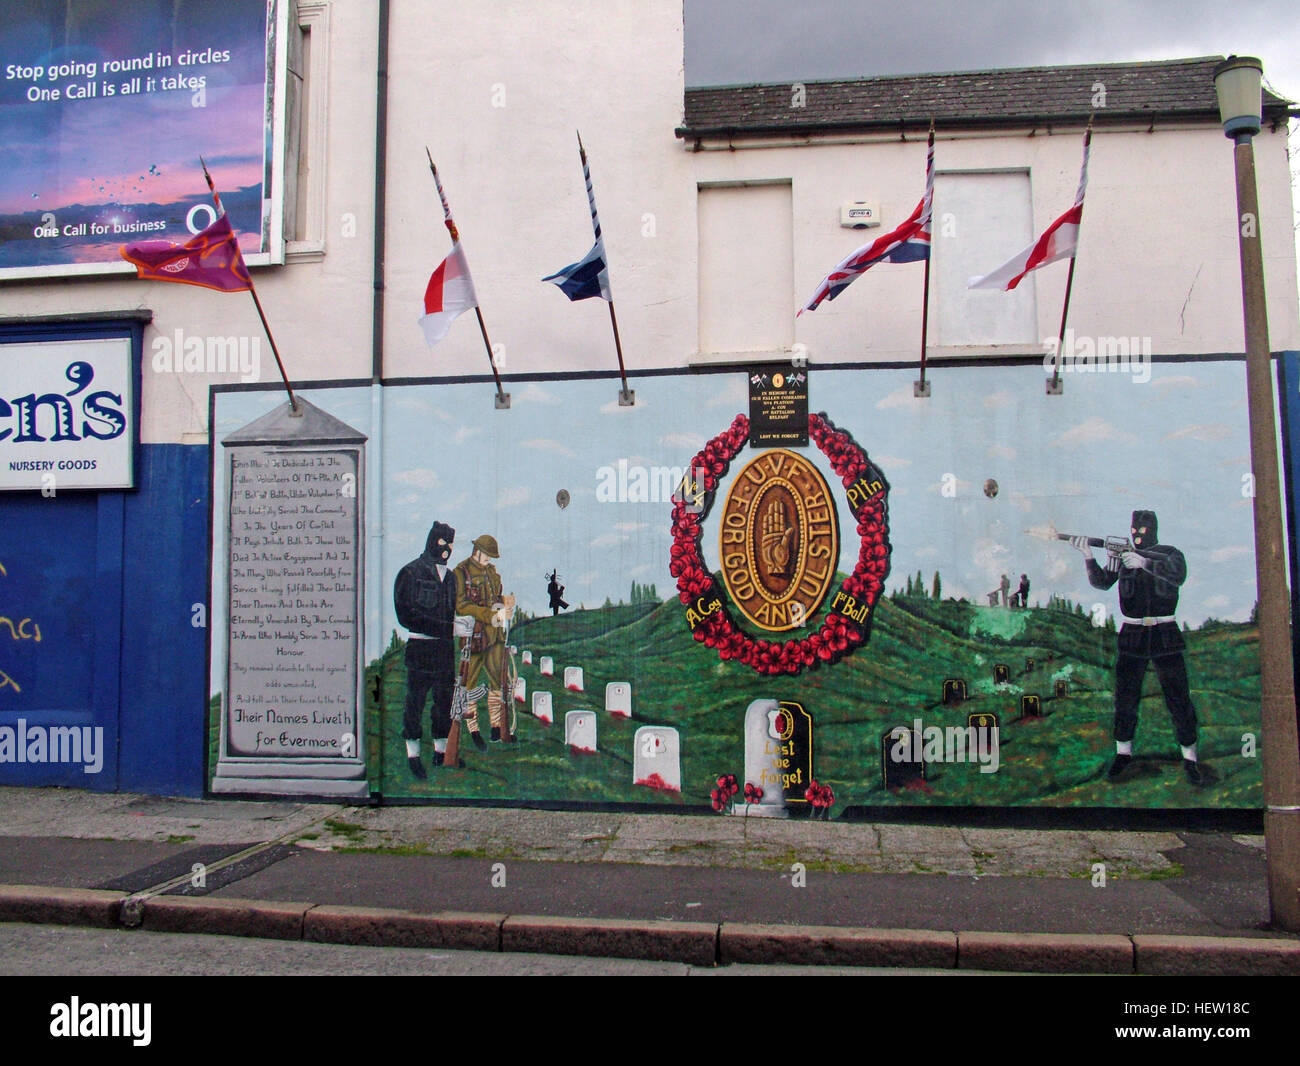 Unionist,British,Shankil,rd,painting,art,artist,martyr,fighter,para,paramilitary,soldier,wall,gable,end,gable end,community,protestant,Shankill Road Mural,West,West Belfast,NI,Northern Ireland,For God for Ulster,For Ulster,For God,flags,flying,flags flying,poppy,poppies,GoTonySmith,@HotpixUK,Tony,Smith,UK,GB,Great,Britain,United,Kingdom,Irish,British,Ireland,problem,with,problem with,issue with,NI,Northern,Northern Ireland,Belfast,City,Centre,Art,Artists,the,troubles,The Troubles,Good Friday Agreement,Peace,honour,painting,wall,walls,tribute,unionism,Fight,Justice,West,Beal,feirste,martyrs,social,tour,tourism,tourists,urban,six,counties,6,backdrop,county,Antrim,DUP,democratic Unionist,red hand,of Ulster,Red Hand Of Ulster,Shankill,Rd,road,Shankill Road,Buy Pictures of,Buy Images Of,Images of,Stock Images,Tony Smith,United Kingdom,Great Britain,British Isles